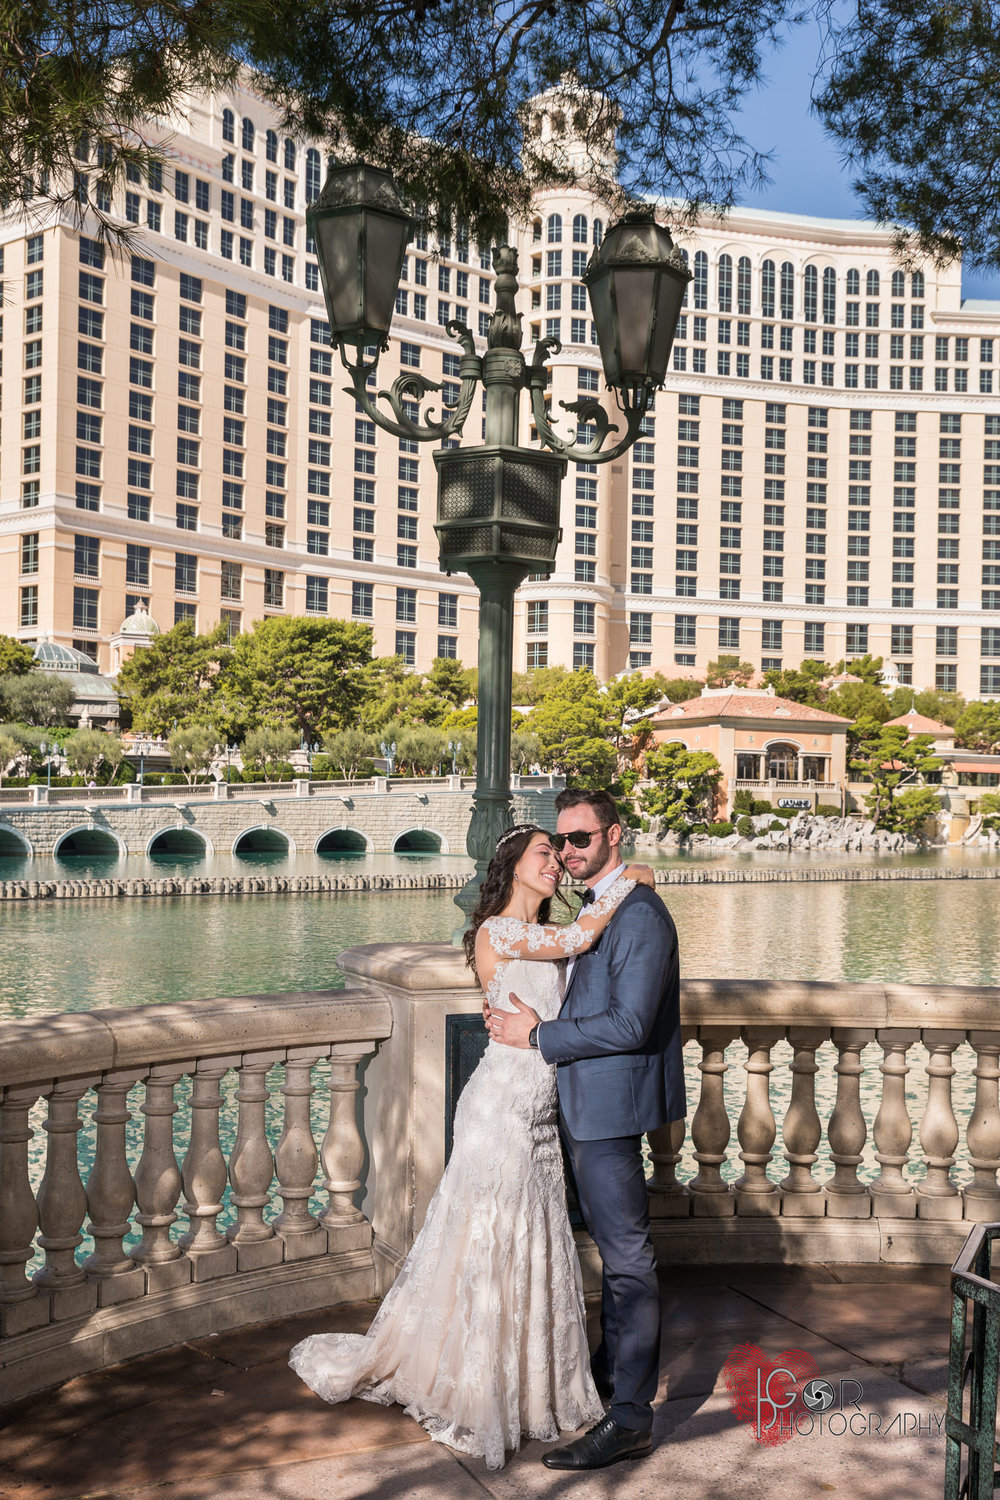 Hotel Bellagio Las Vegas wedding